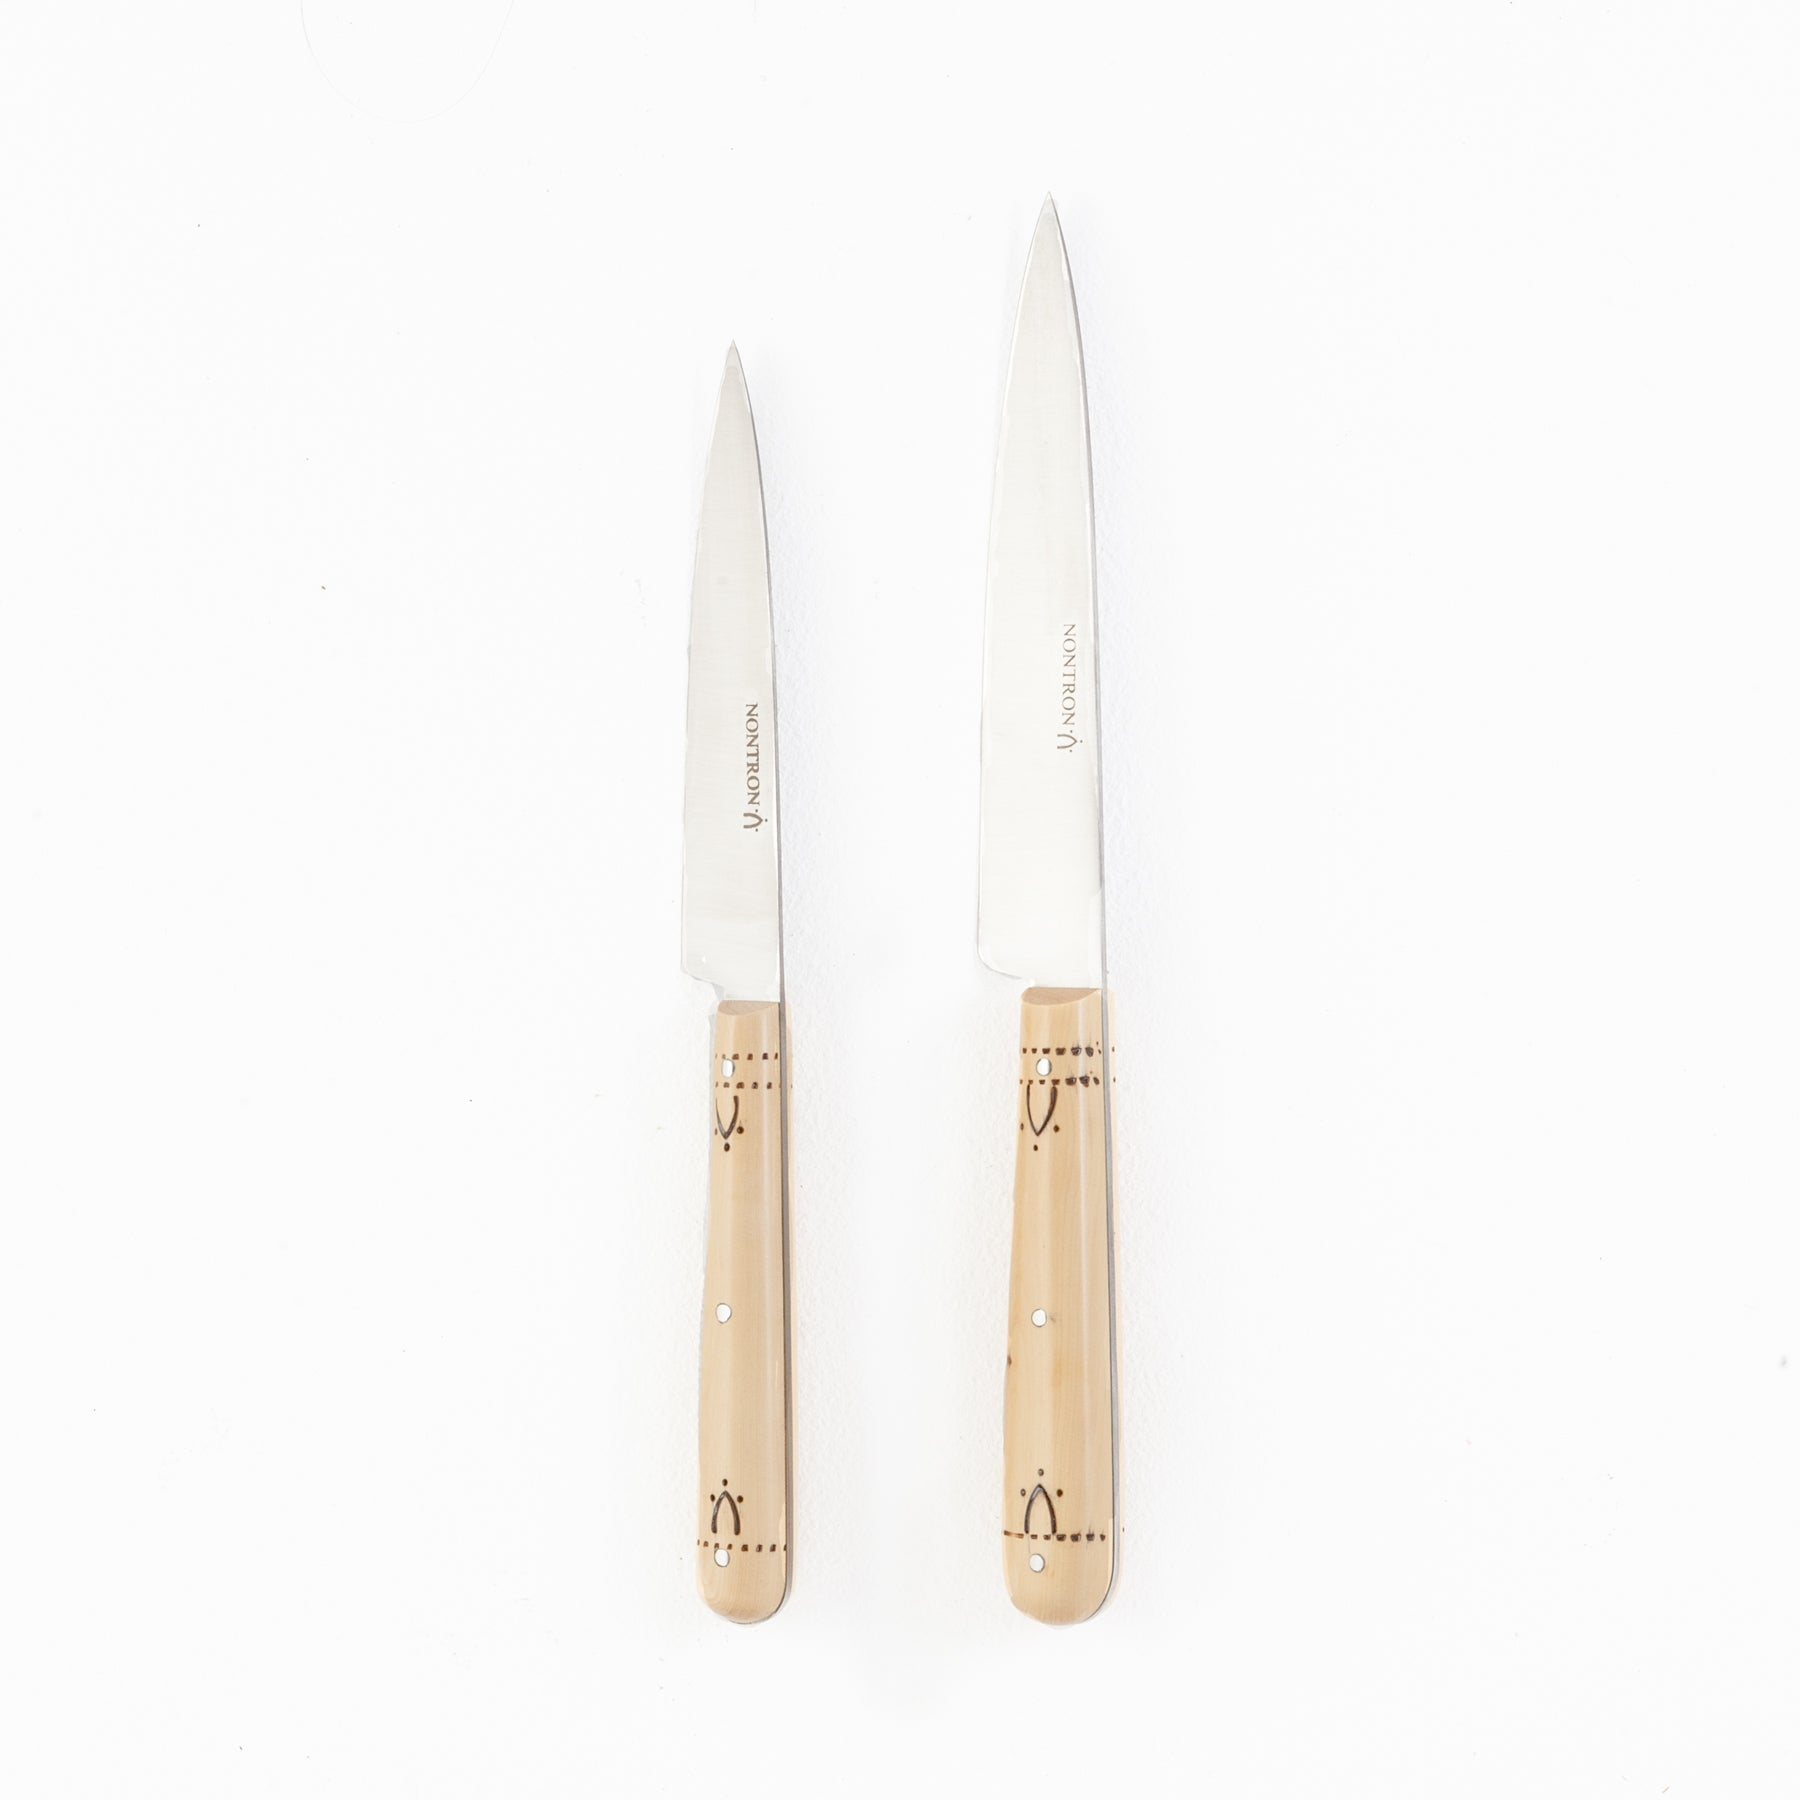 French Boxwood Paring Knife